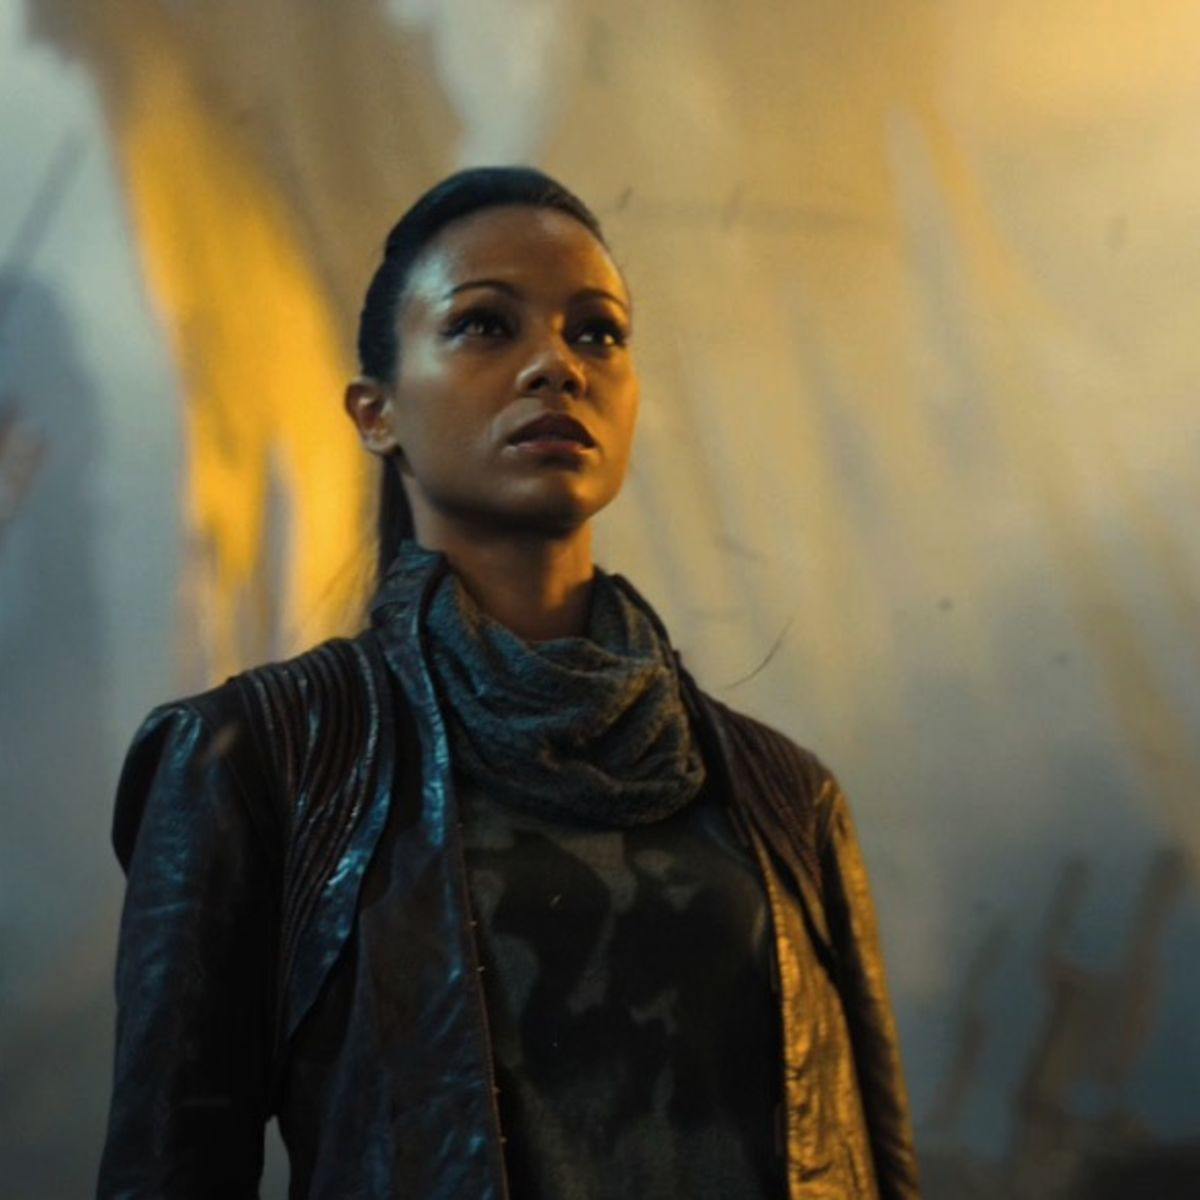 Uhura-Star-Trek-into-Darkness-zoe-saldana-as-uhura-32970227-1433-587.jpg